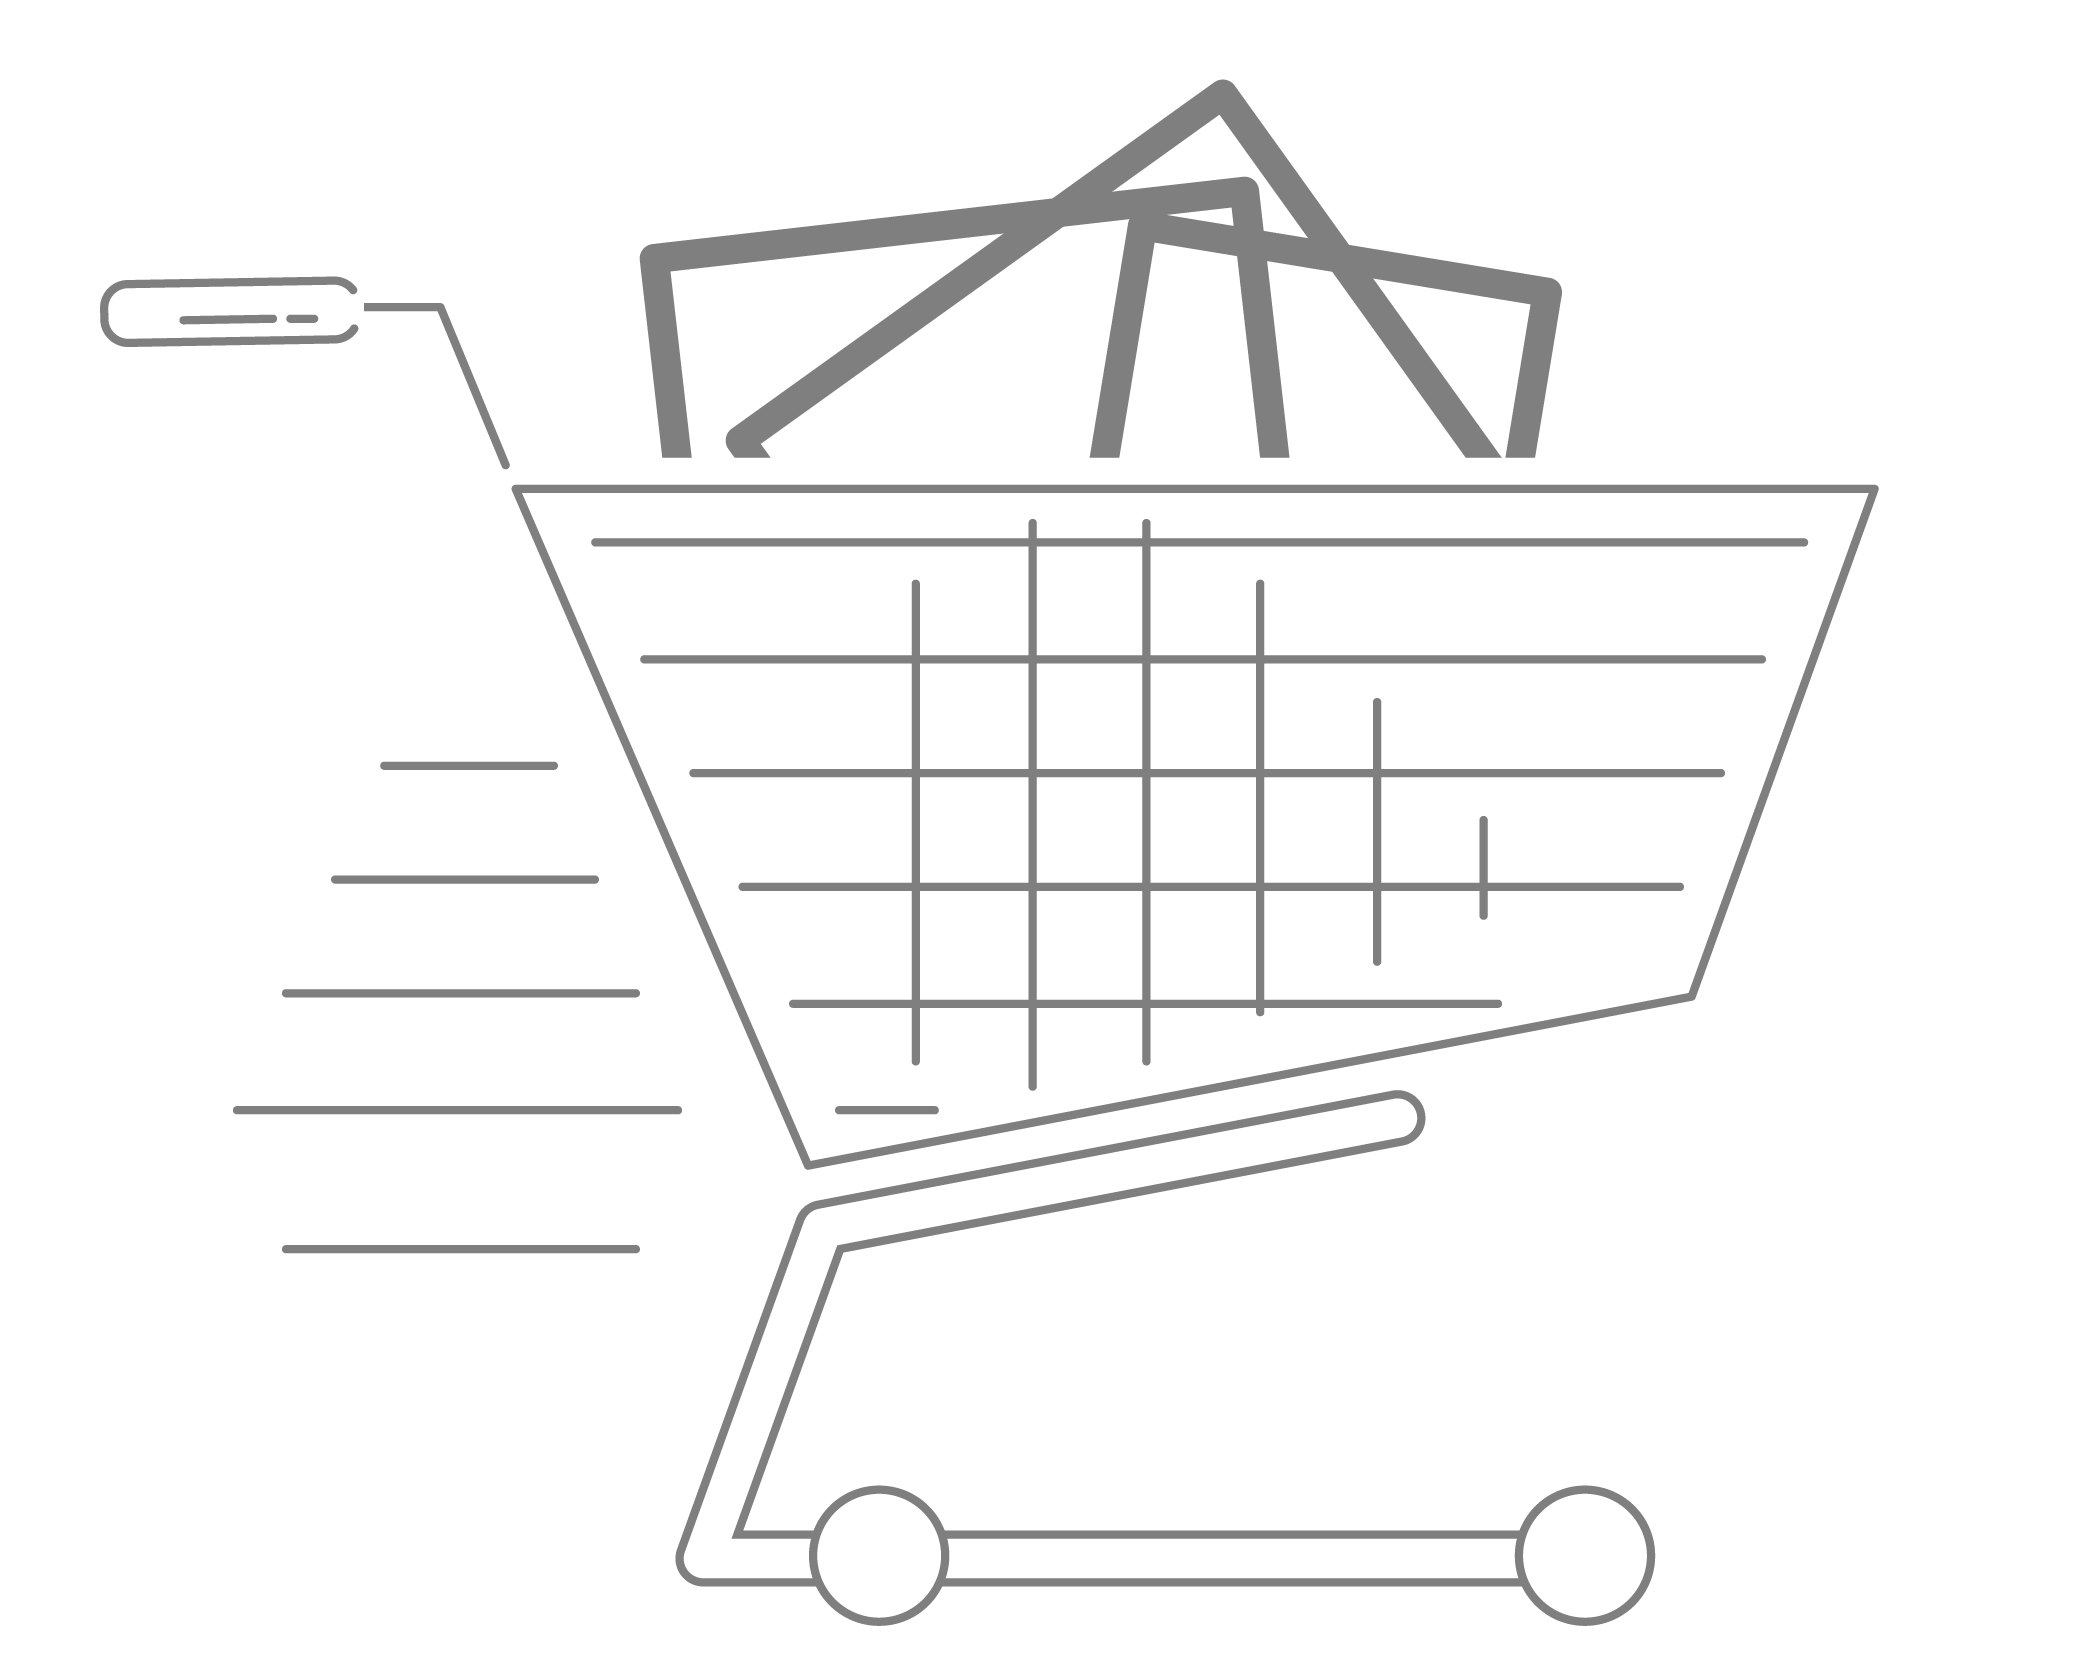 A shopping cart moving